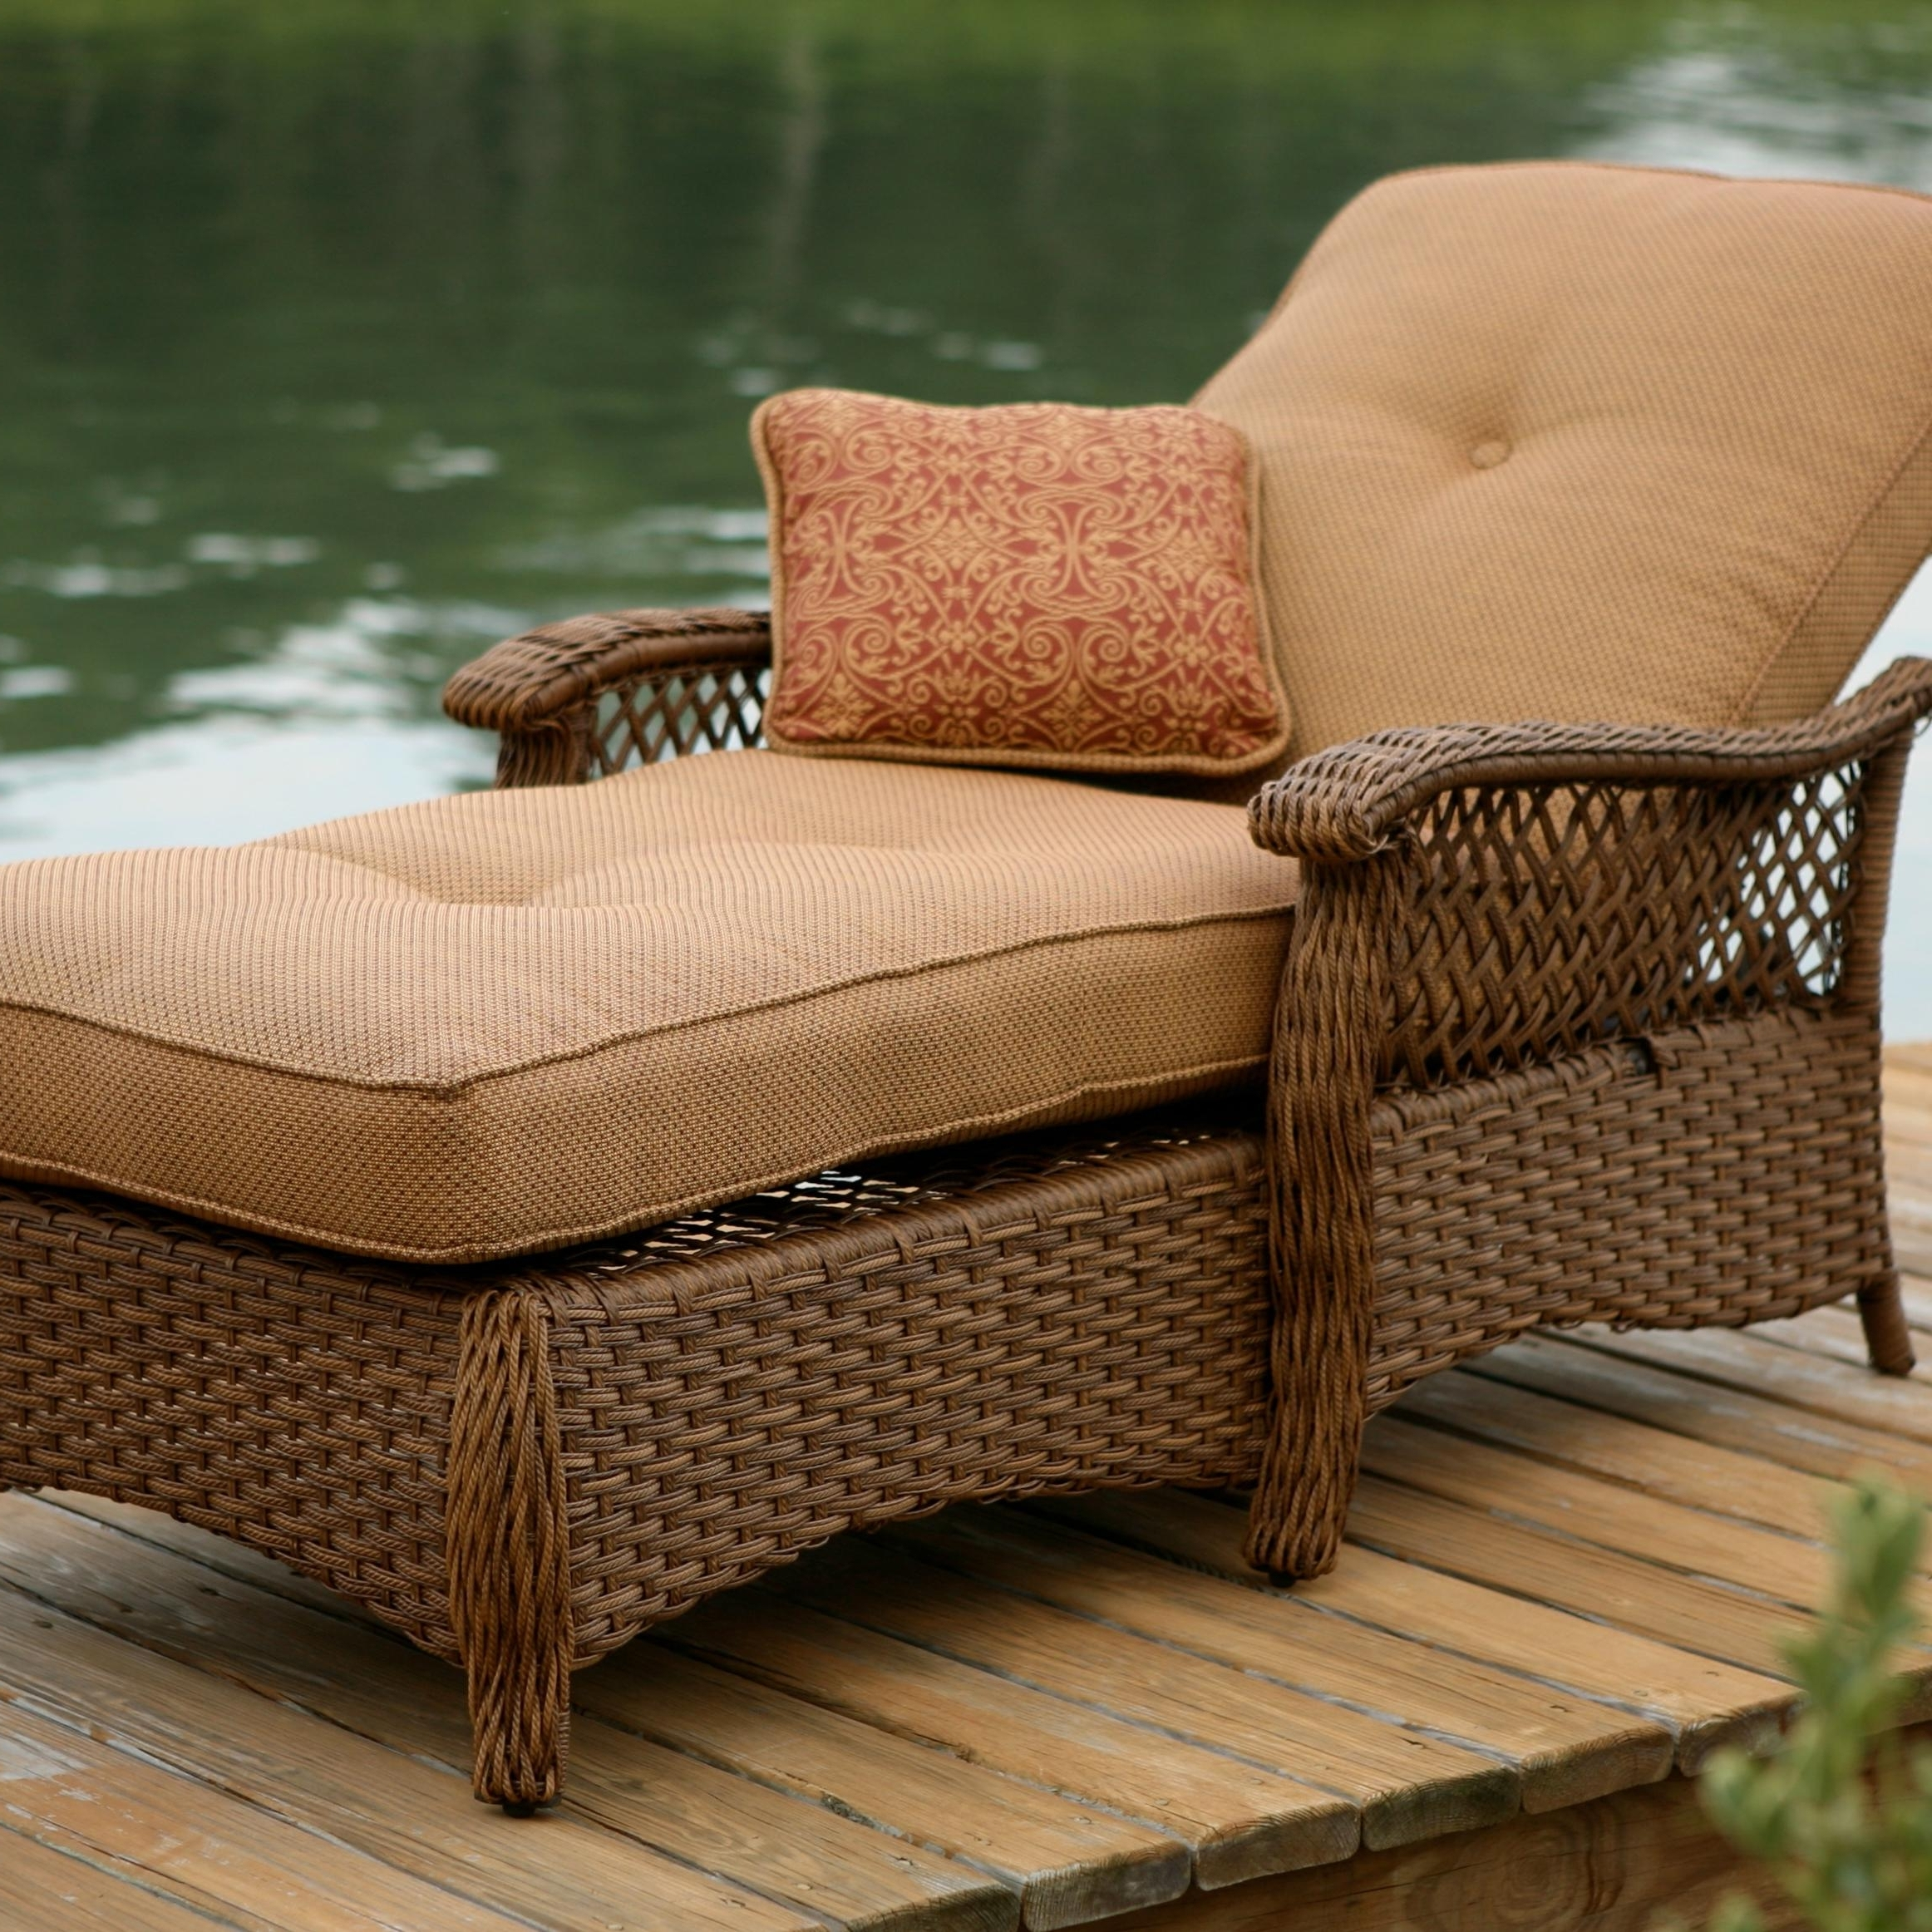 Fashionable Outdoor Chaises Regarding Patio Furniture Lounge Chair • Lounge Chairs Ideas (View 2 of 15)